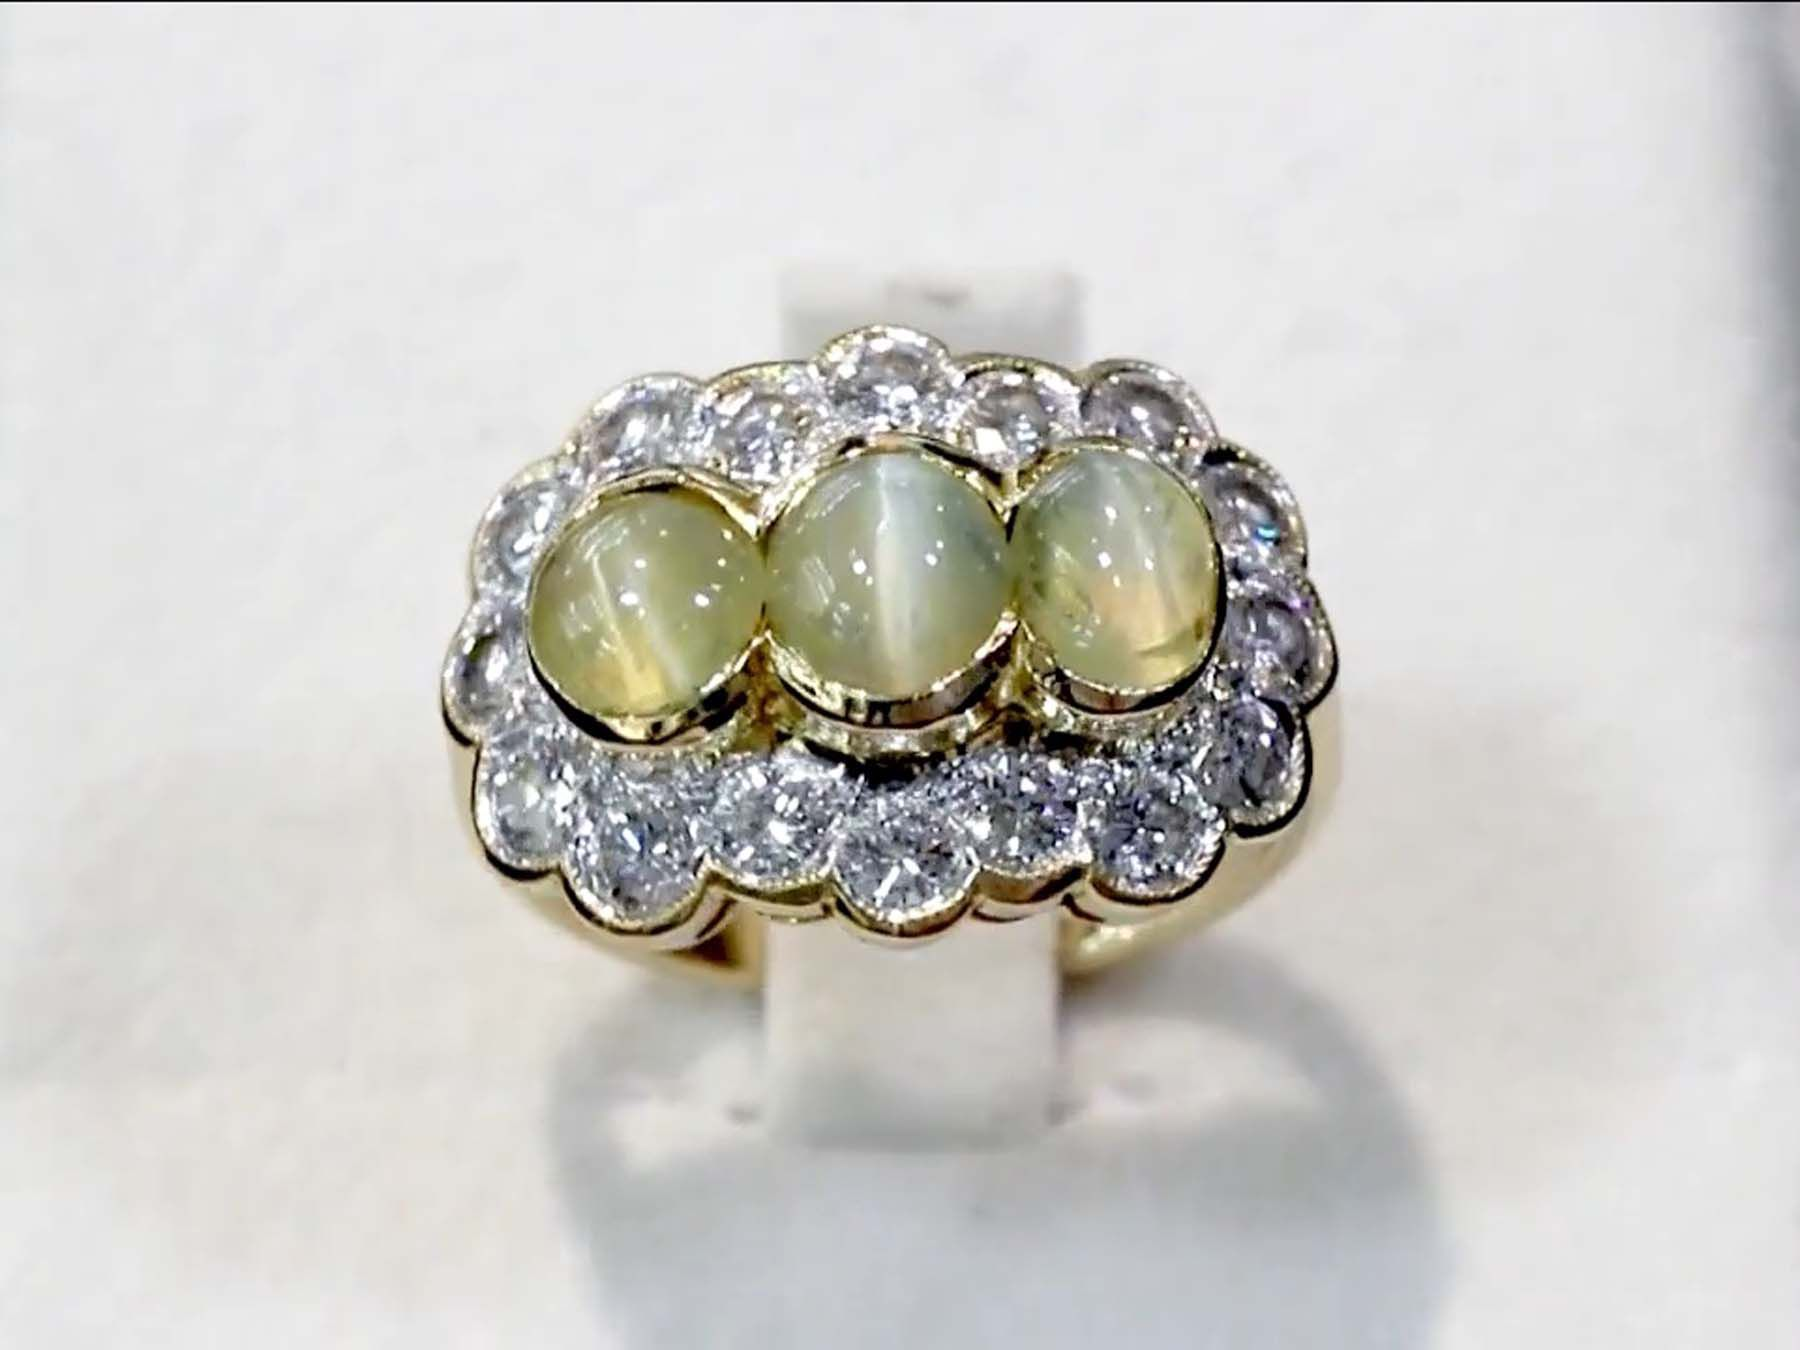 Cat's Eye Chrysoberyl Ring